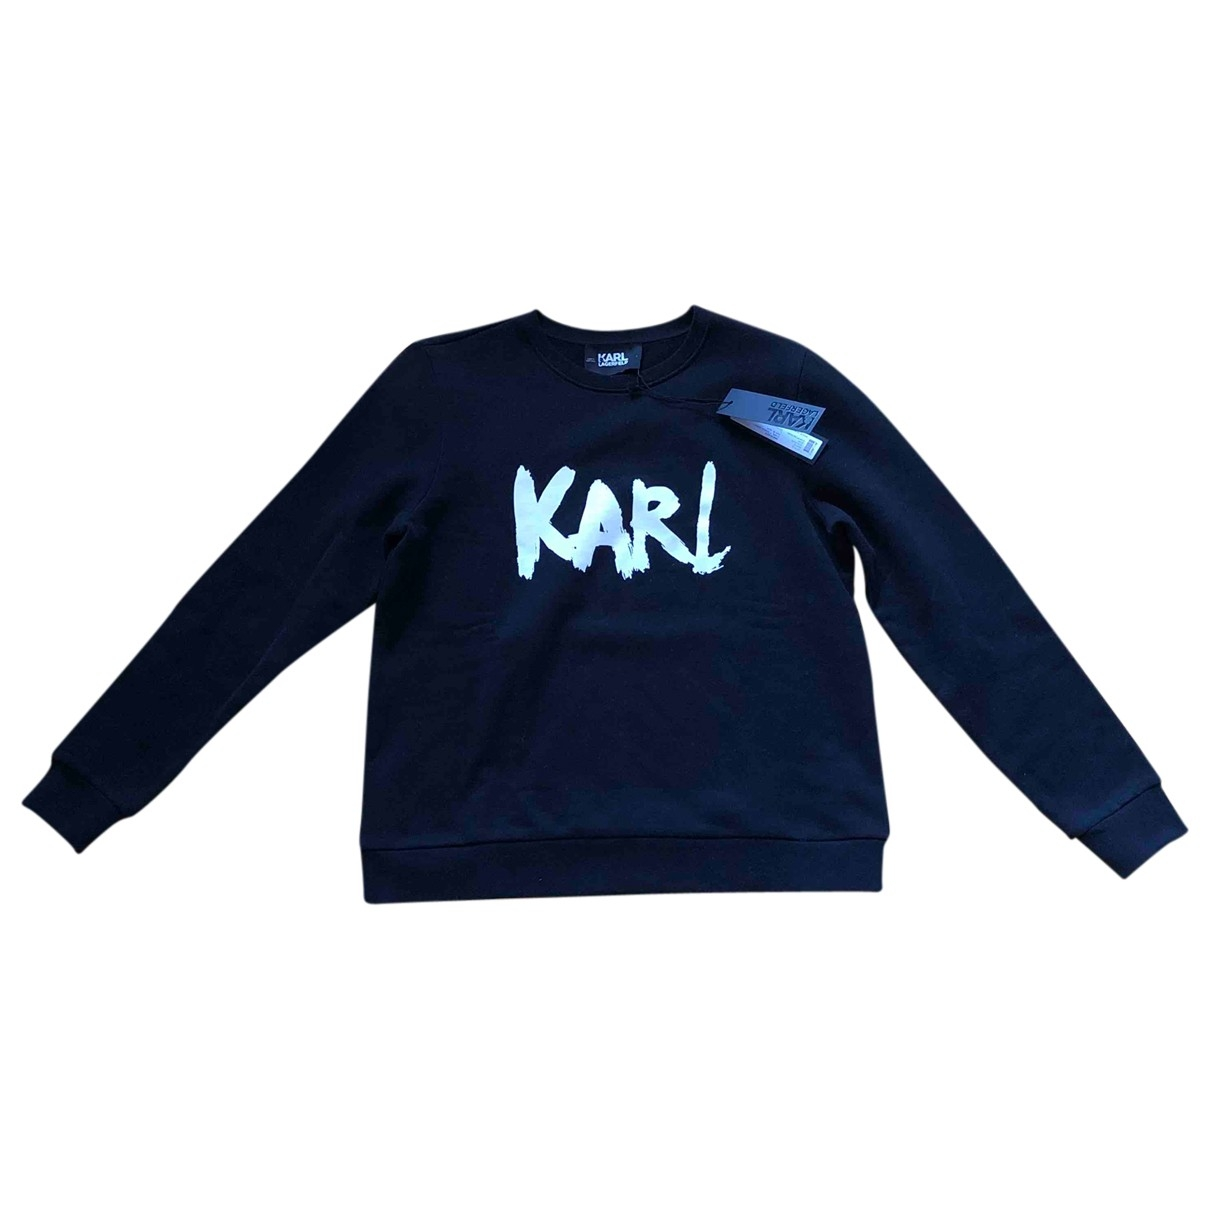 Karl Lagerfeld \N Black Cotton Knitwear for Women L International